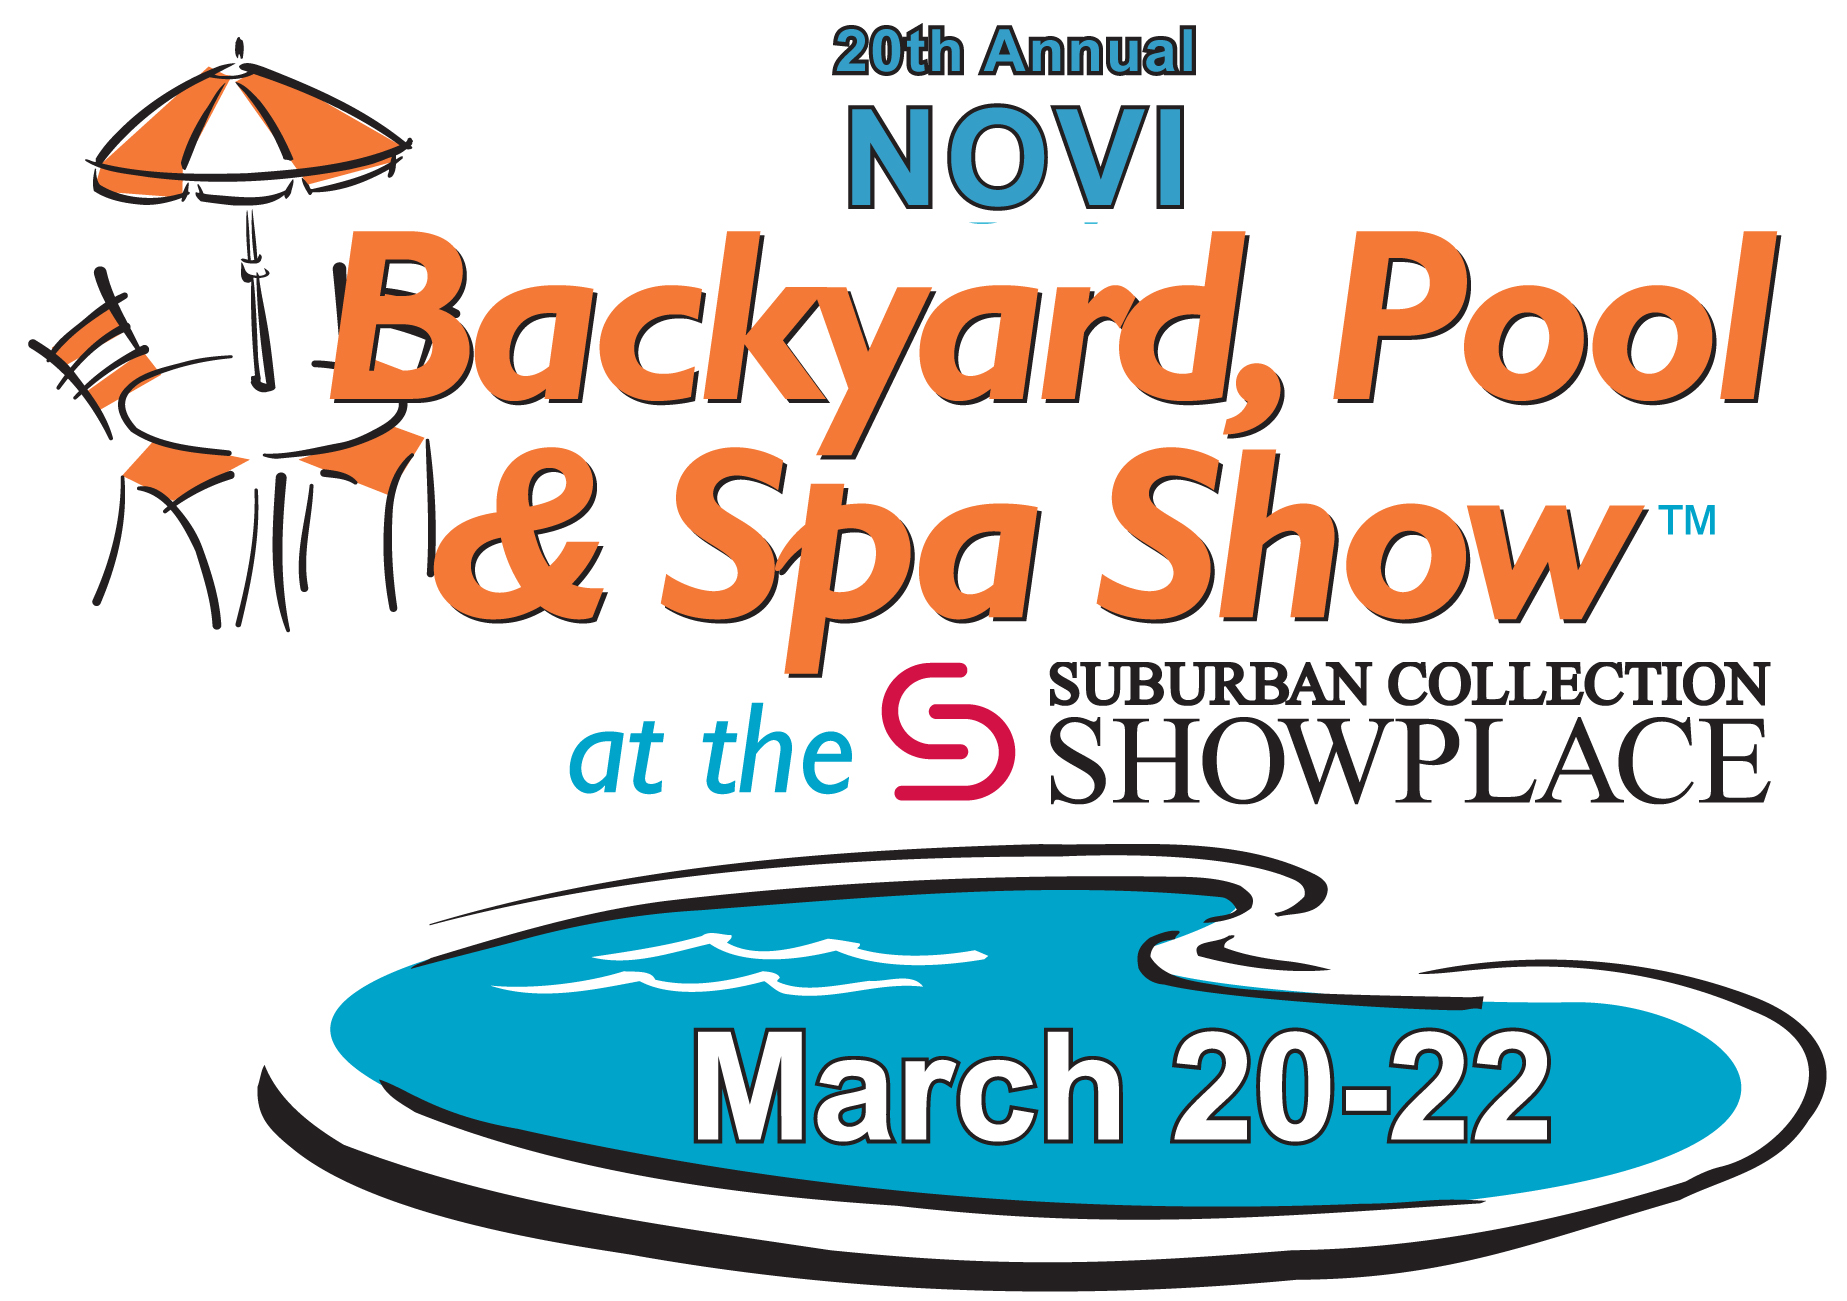 Get ready for summer novi backyard pool spa show opens for Pool spa show 2015